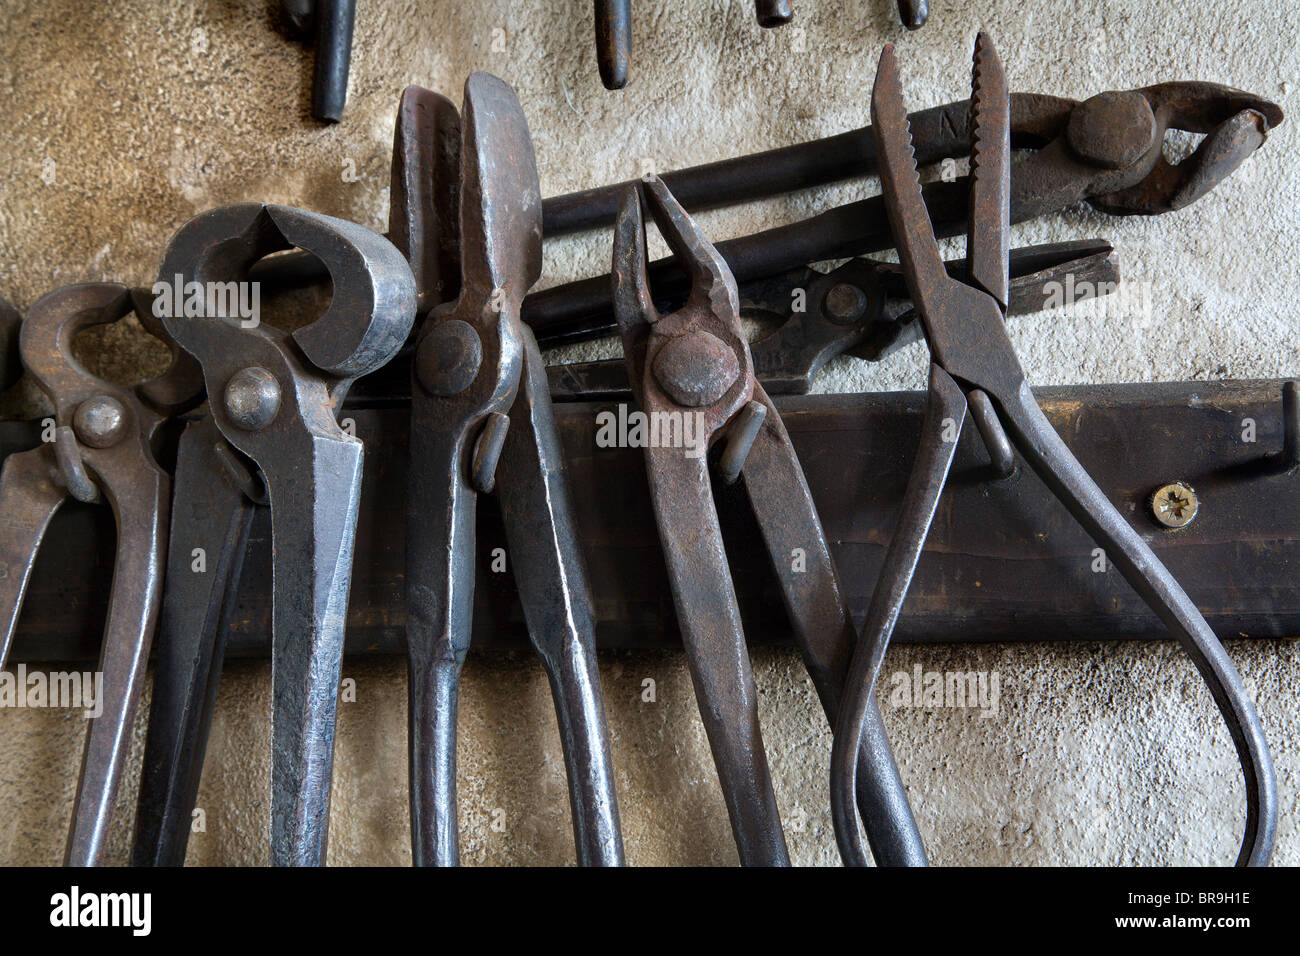 tools from smithy - Stock Image